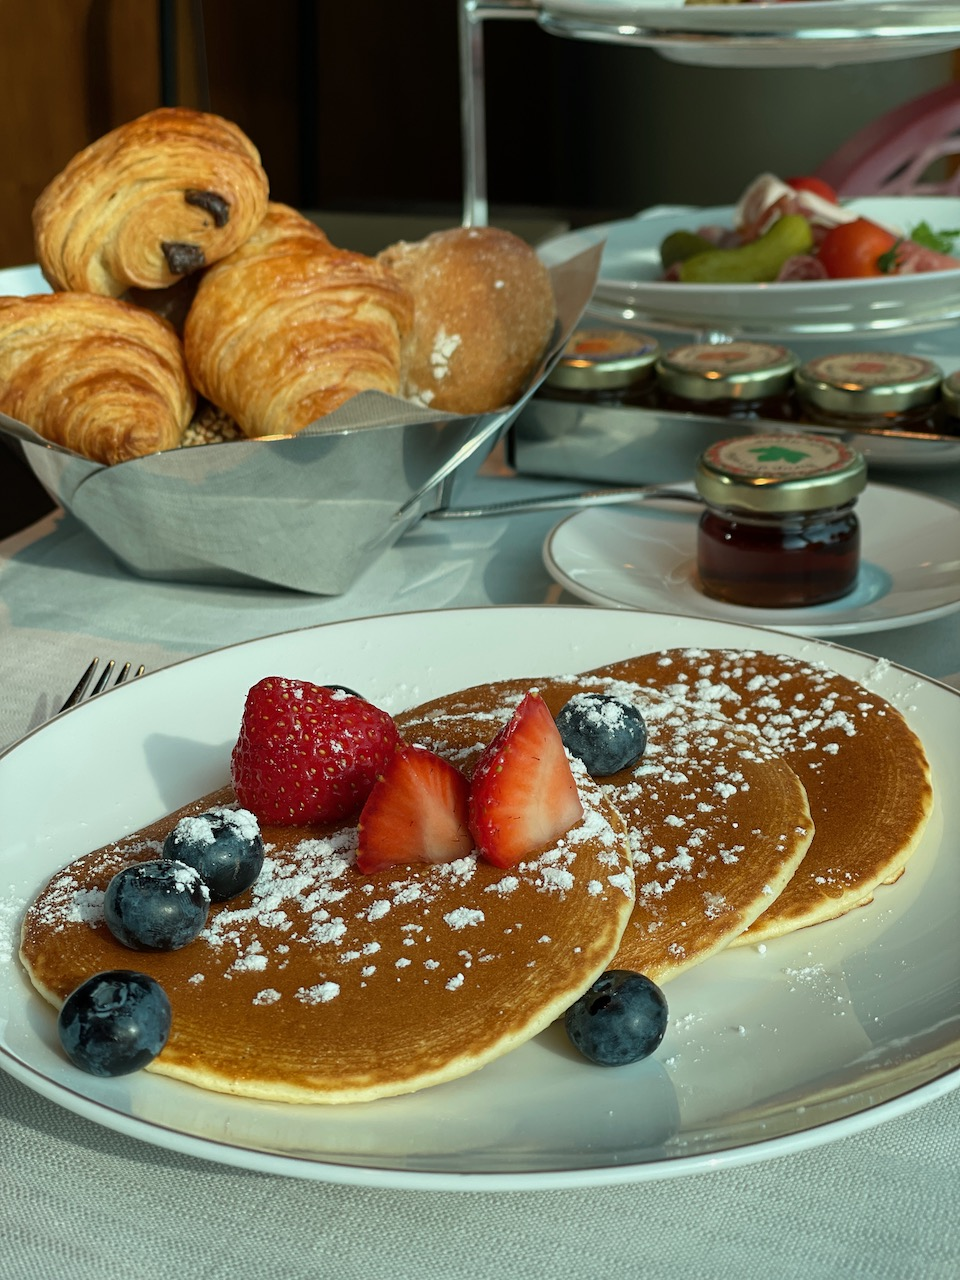 Breakfast Buffet no longer exists since Covid - instead you get a tower of goodies and made-to-order selections